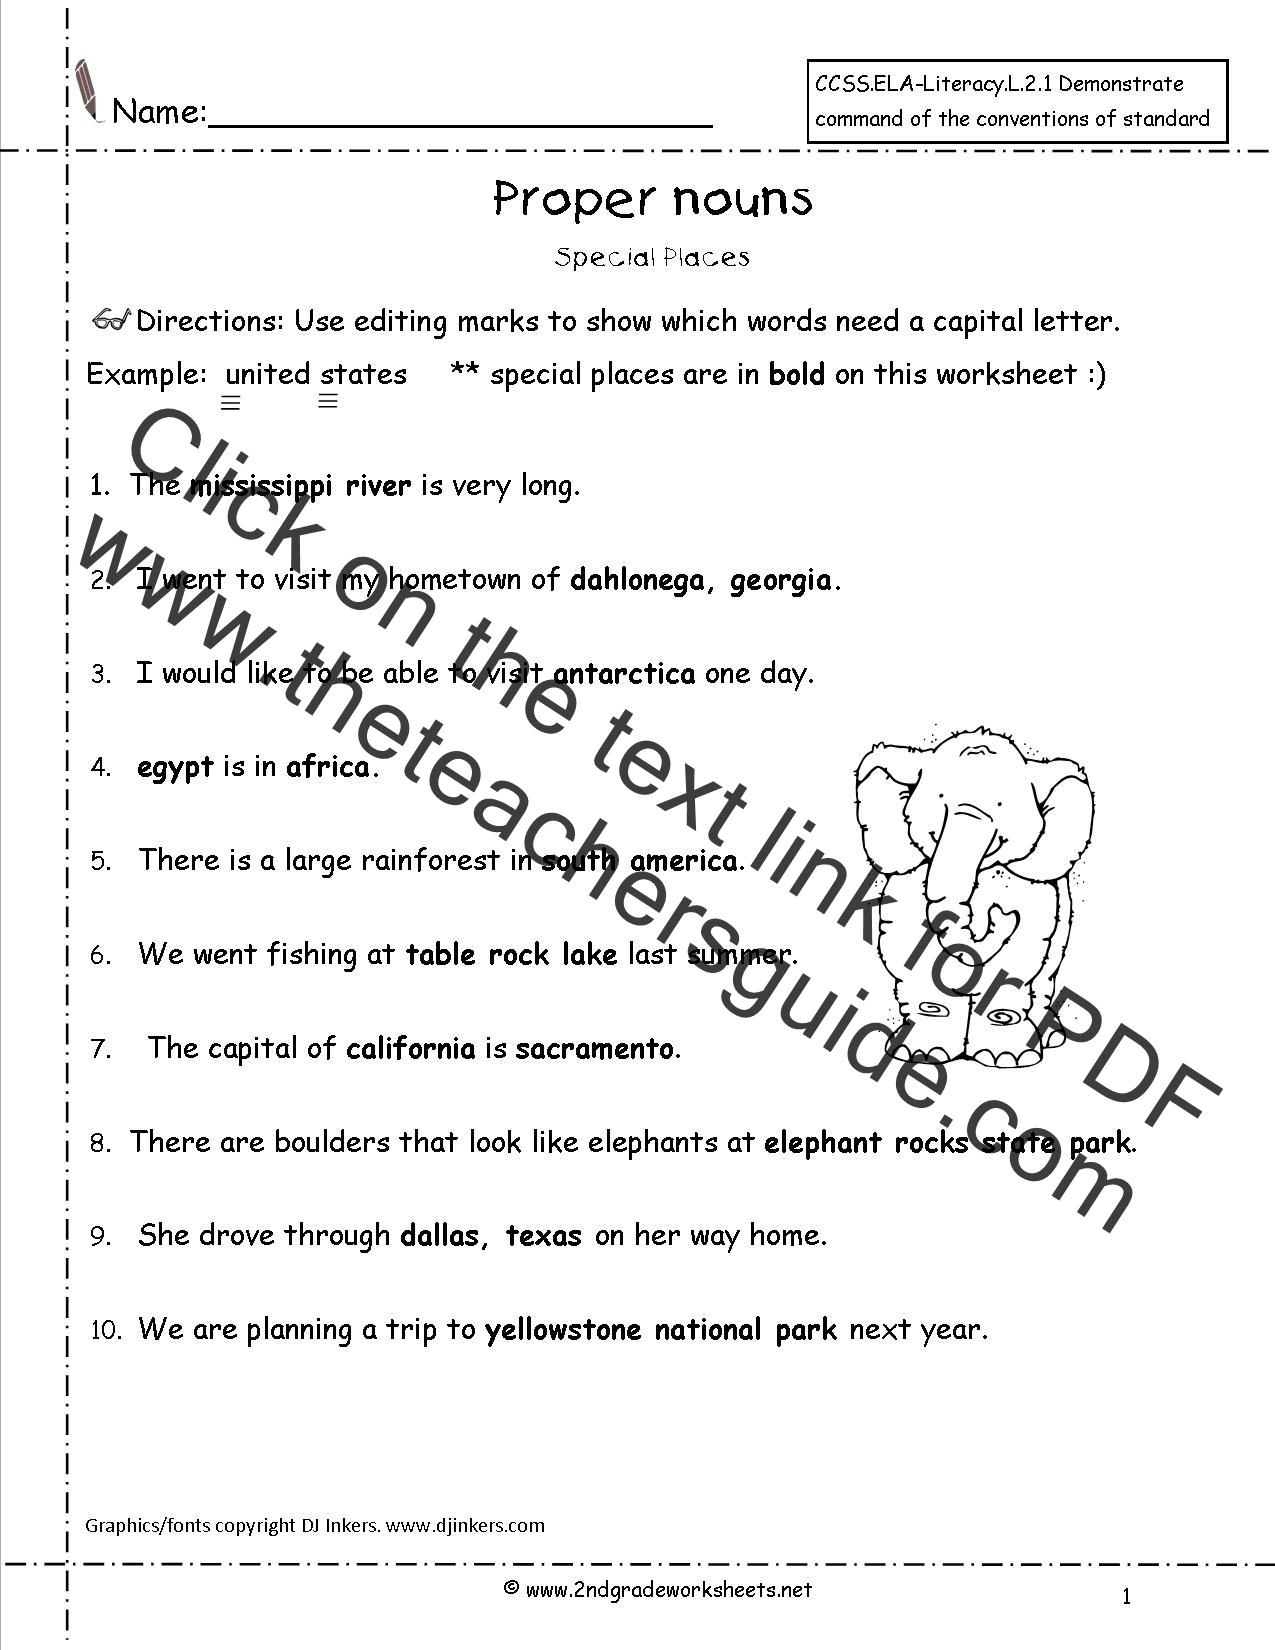 Printables Proper Noun Worksheets For 2nd Grade common and proper nouns worksheet